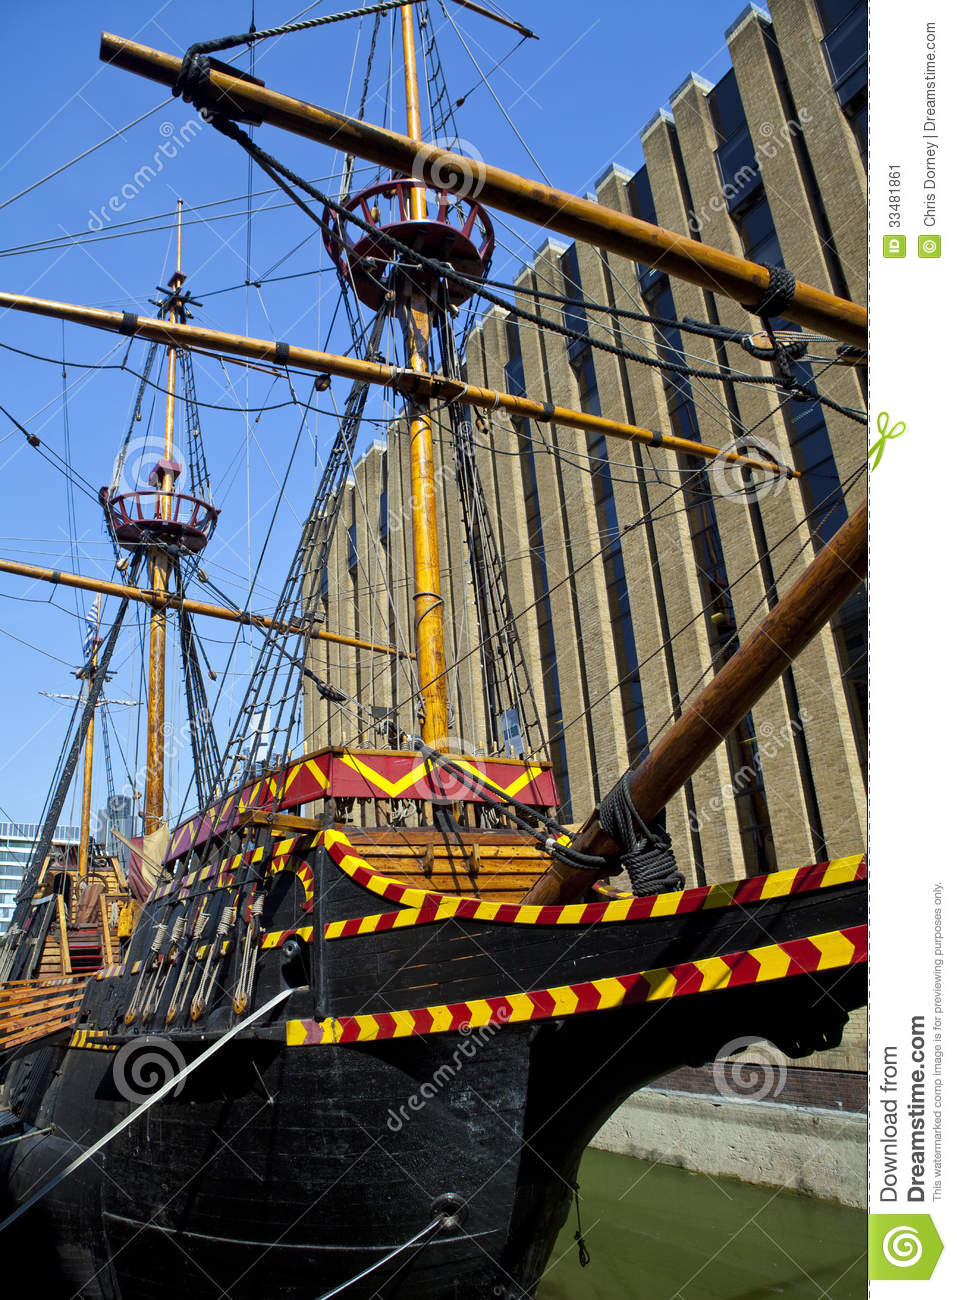 The Golden Hind Galleon Ship In London Stock Image.